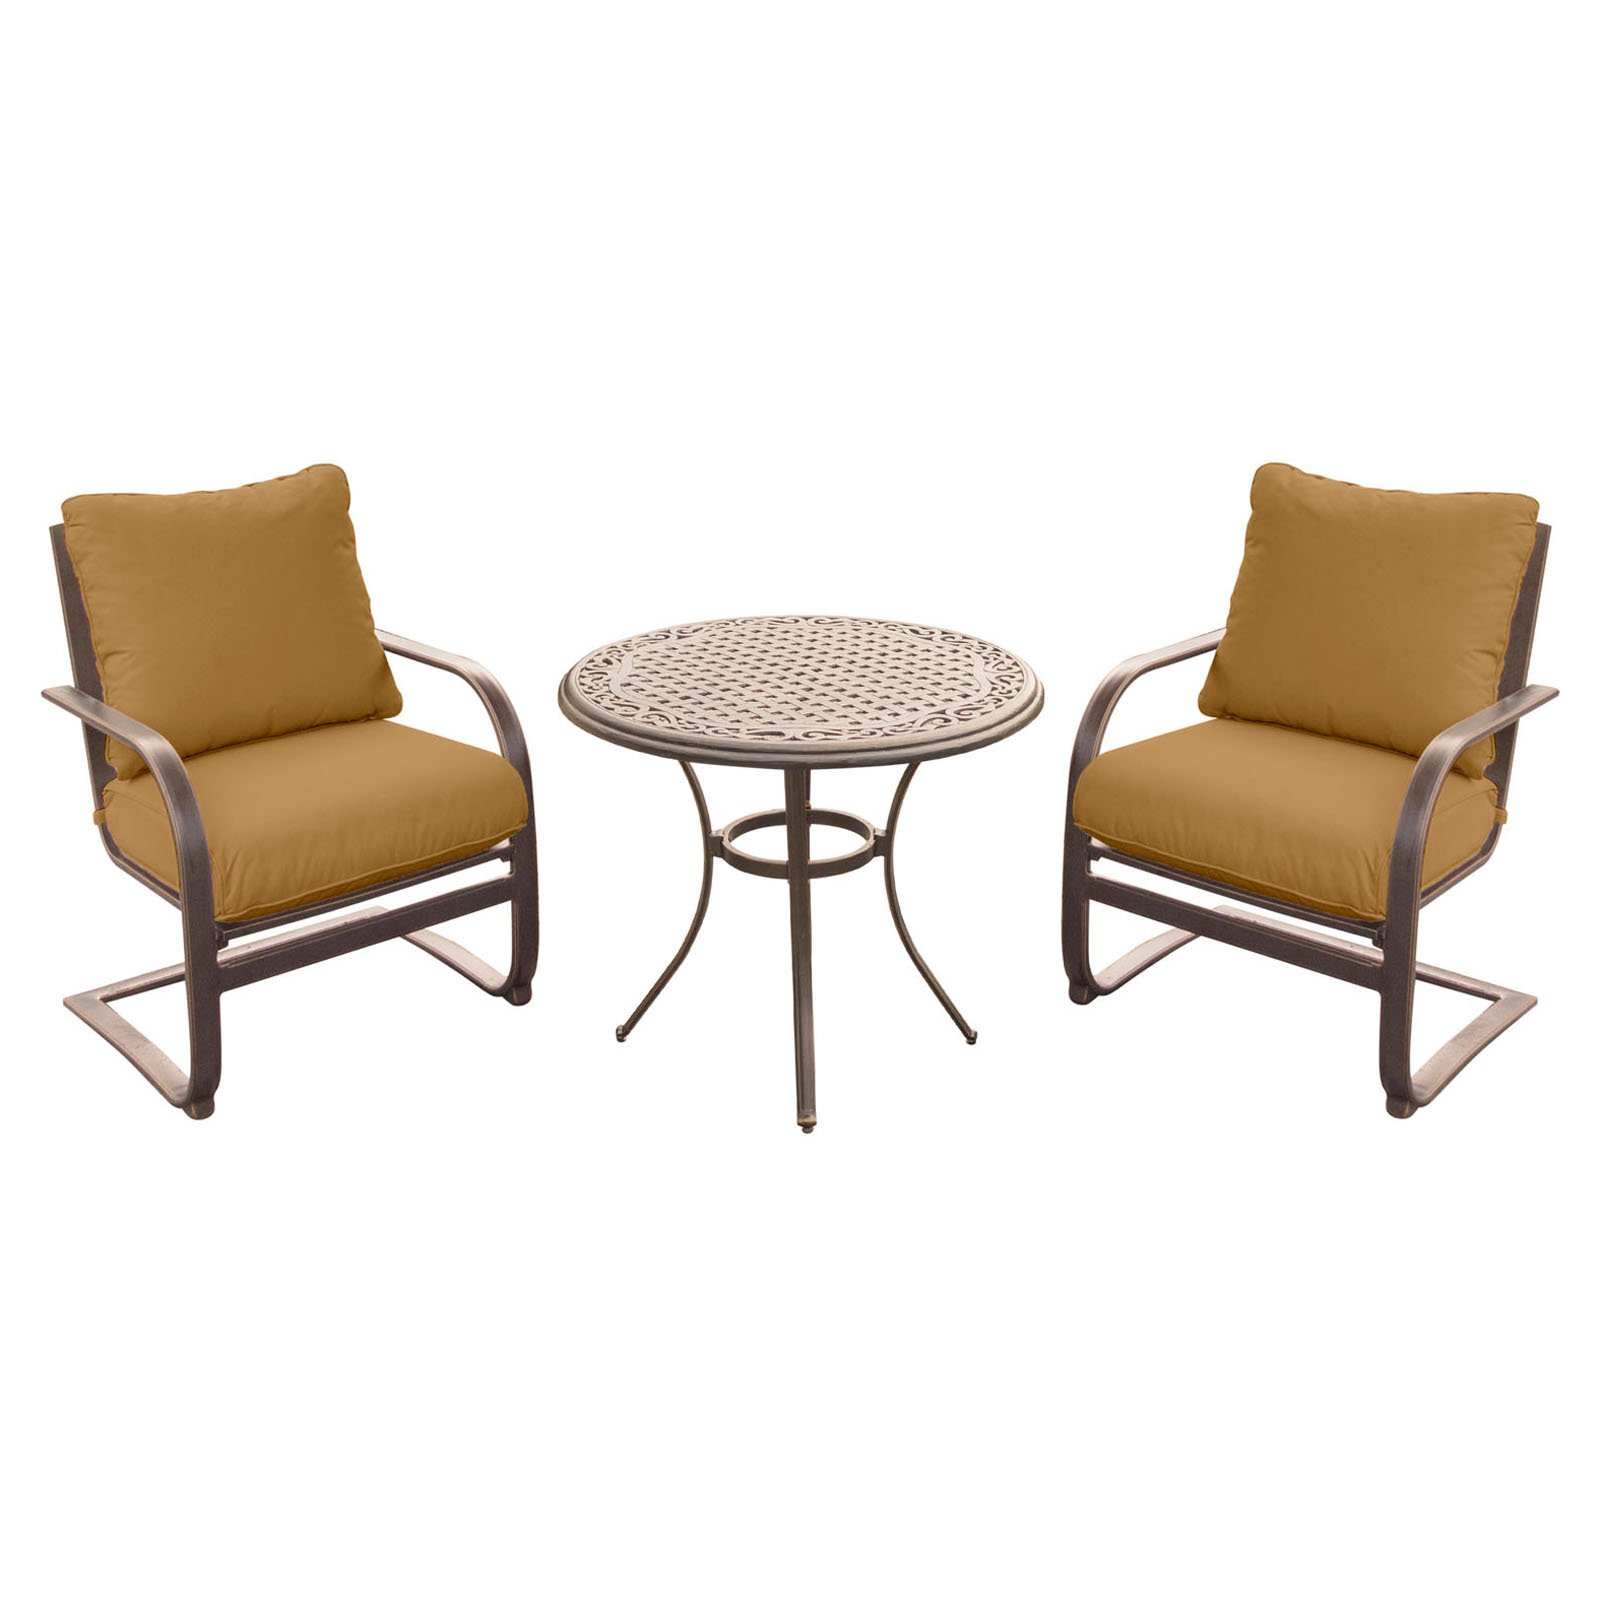 Hanover Outdoor Summer Nights 3-Piece Chat Set with Cast-Top Table and C-Spring Chairs in Desert Sunset